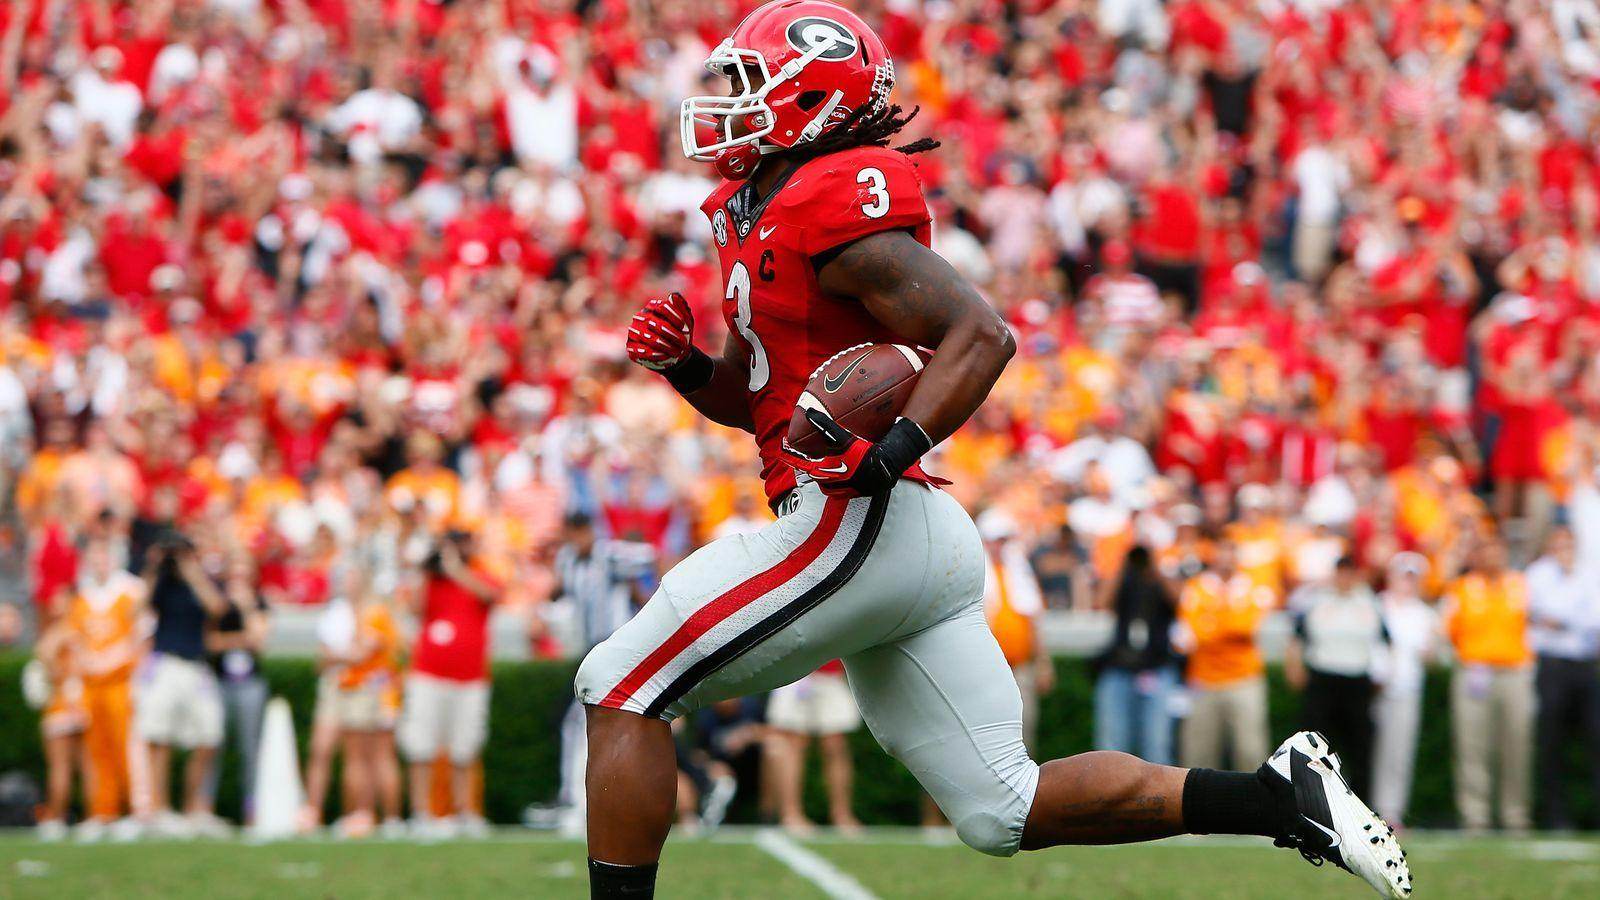 Would you rather draft Todd Gurley or Melvin Gordon?